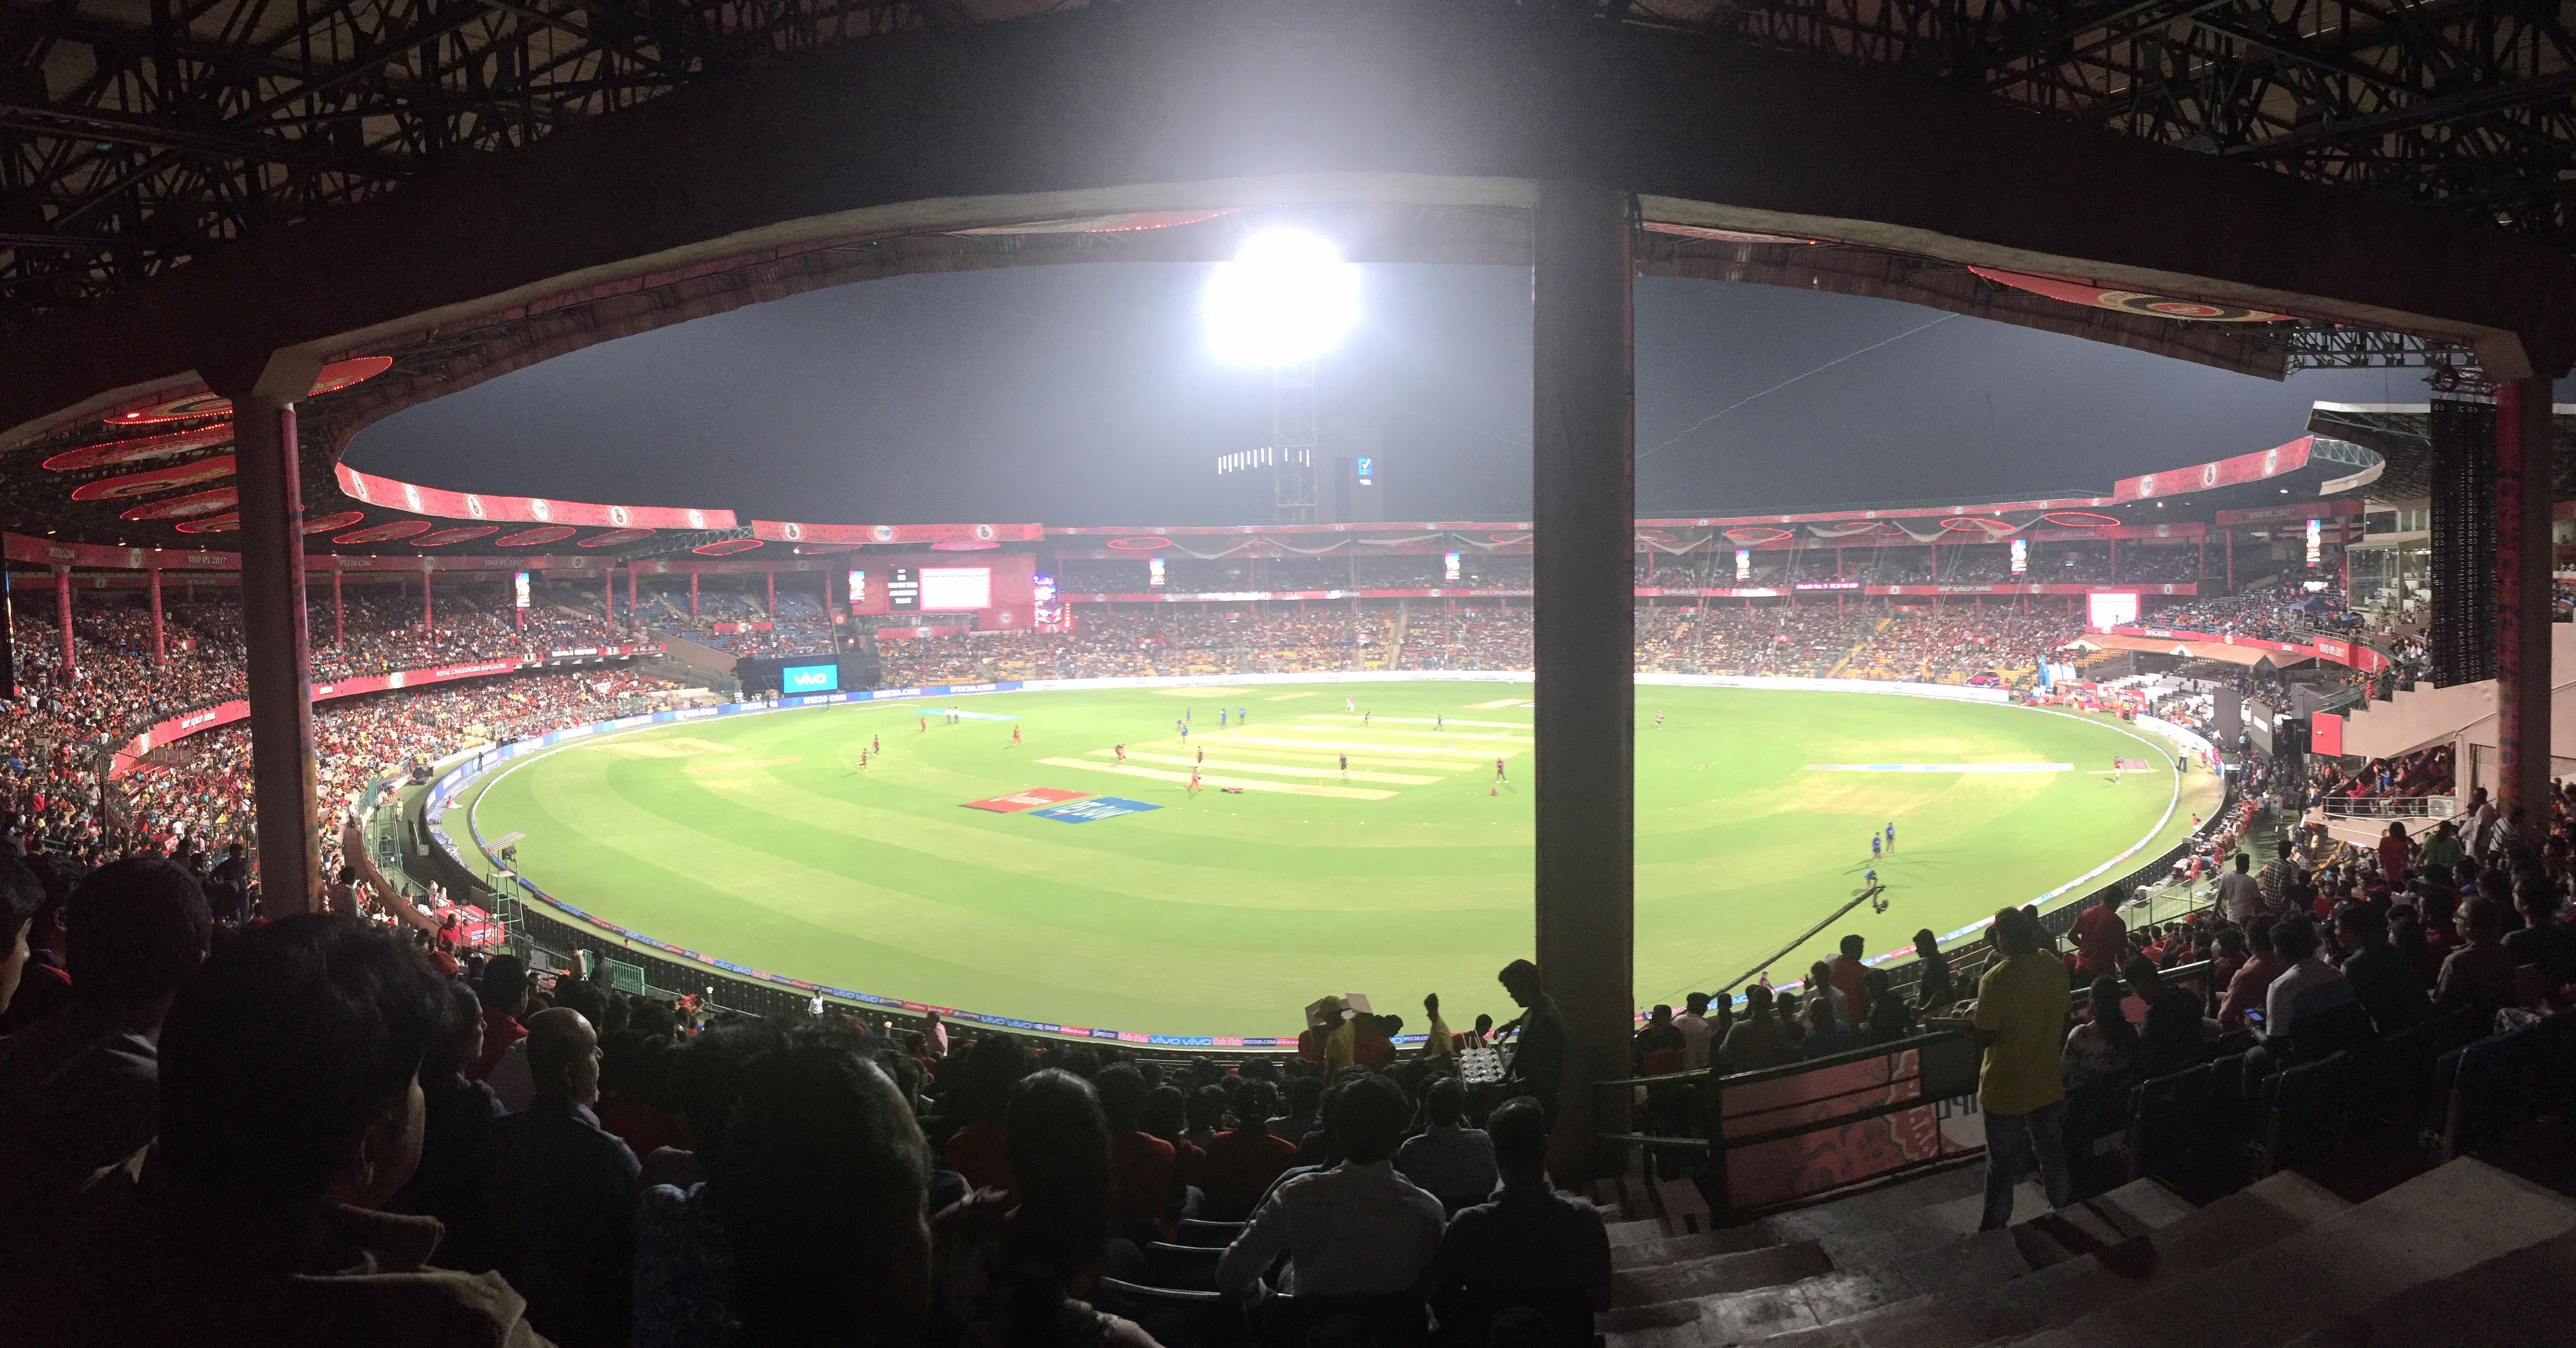 At a cricket match in Bangalore